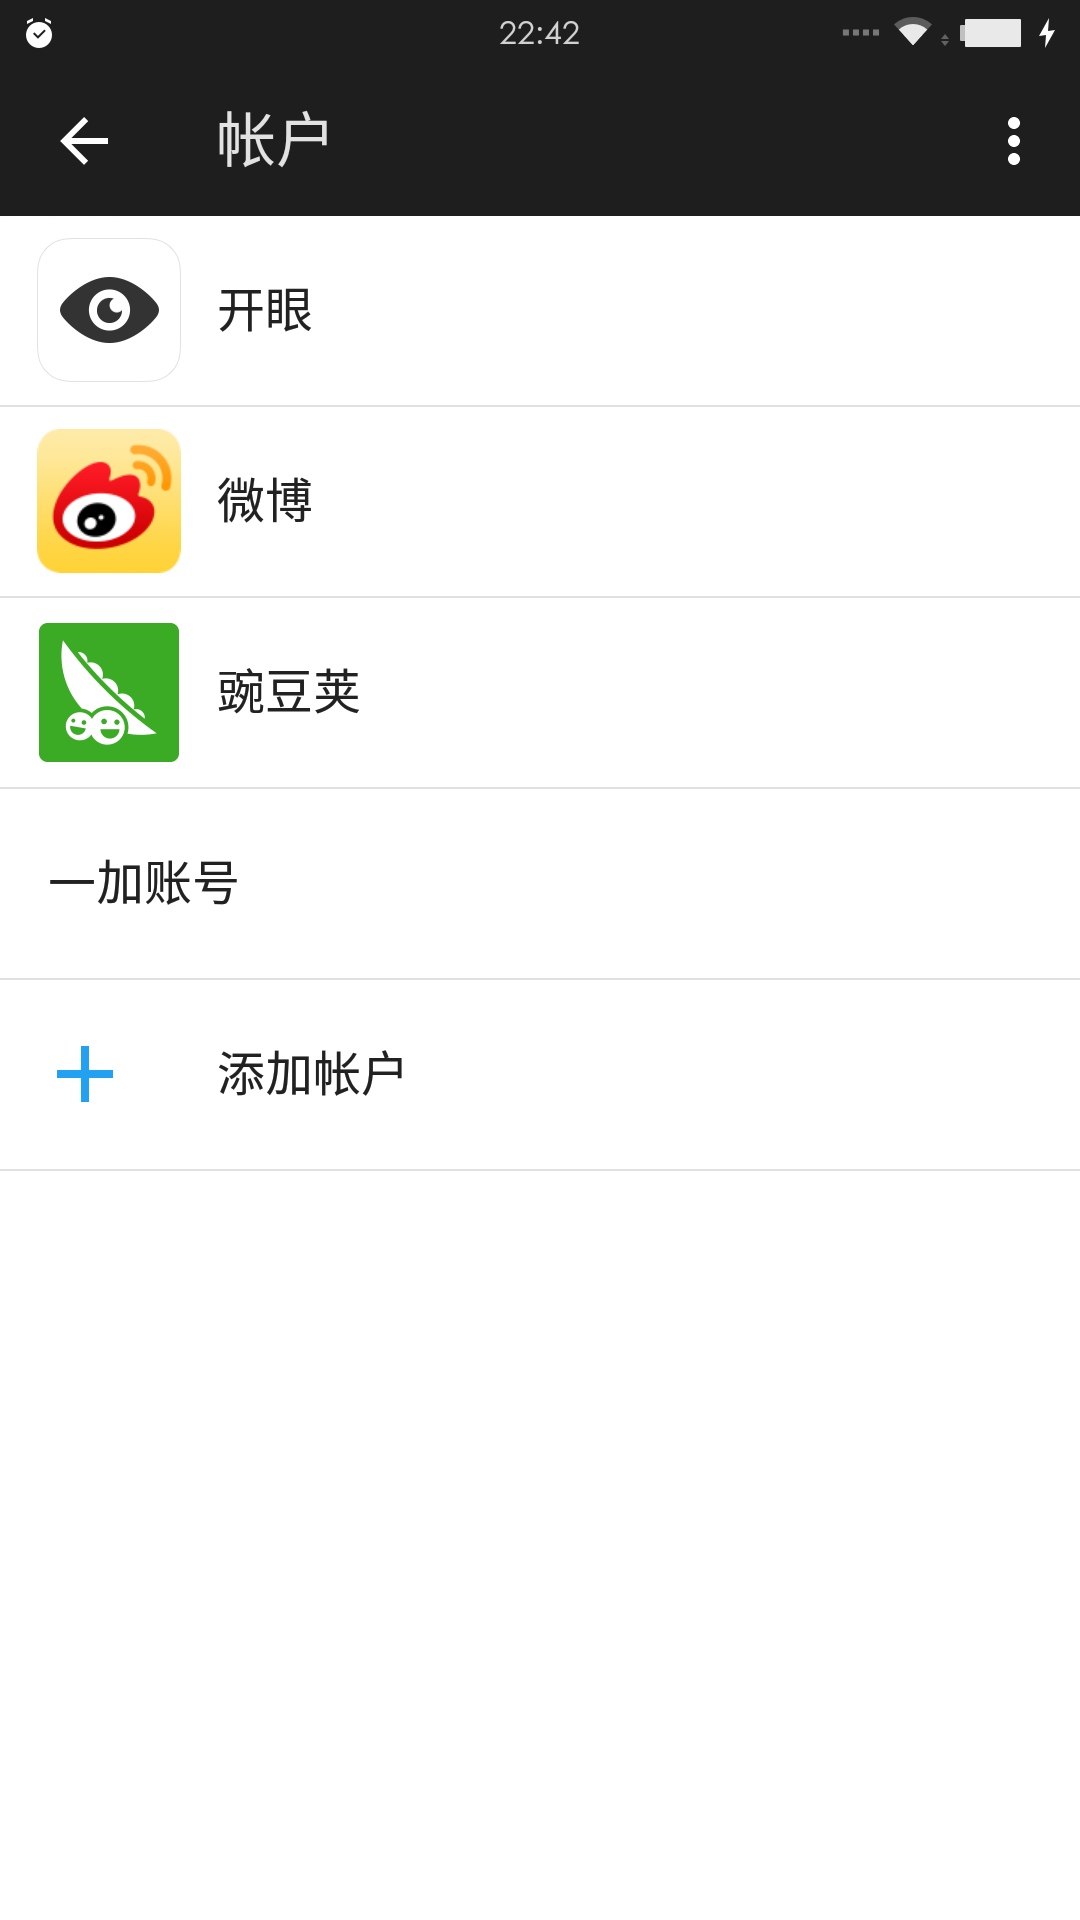 Screenshot_2015-08-07-22-42-34.png